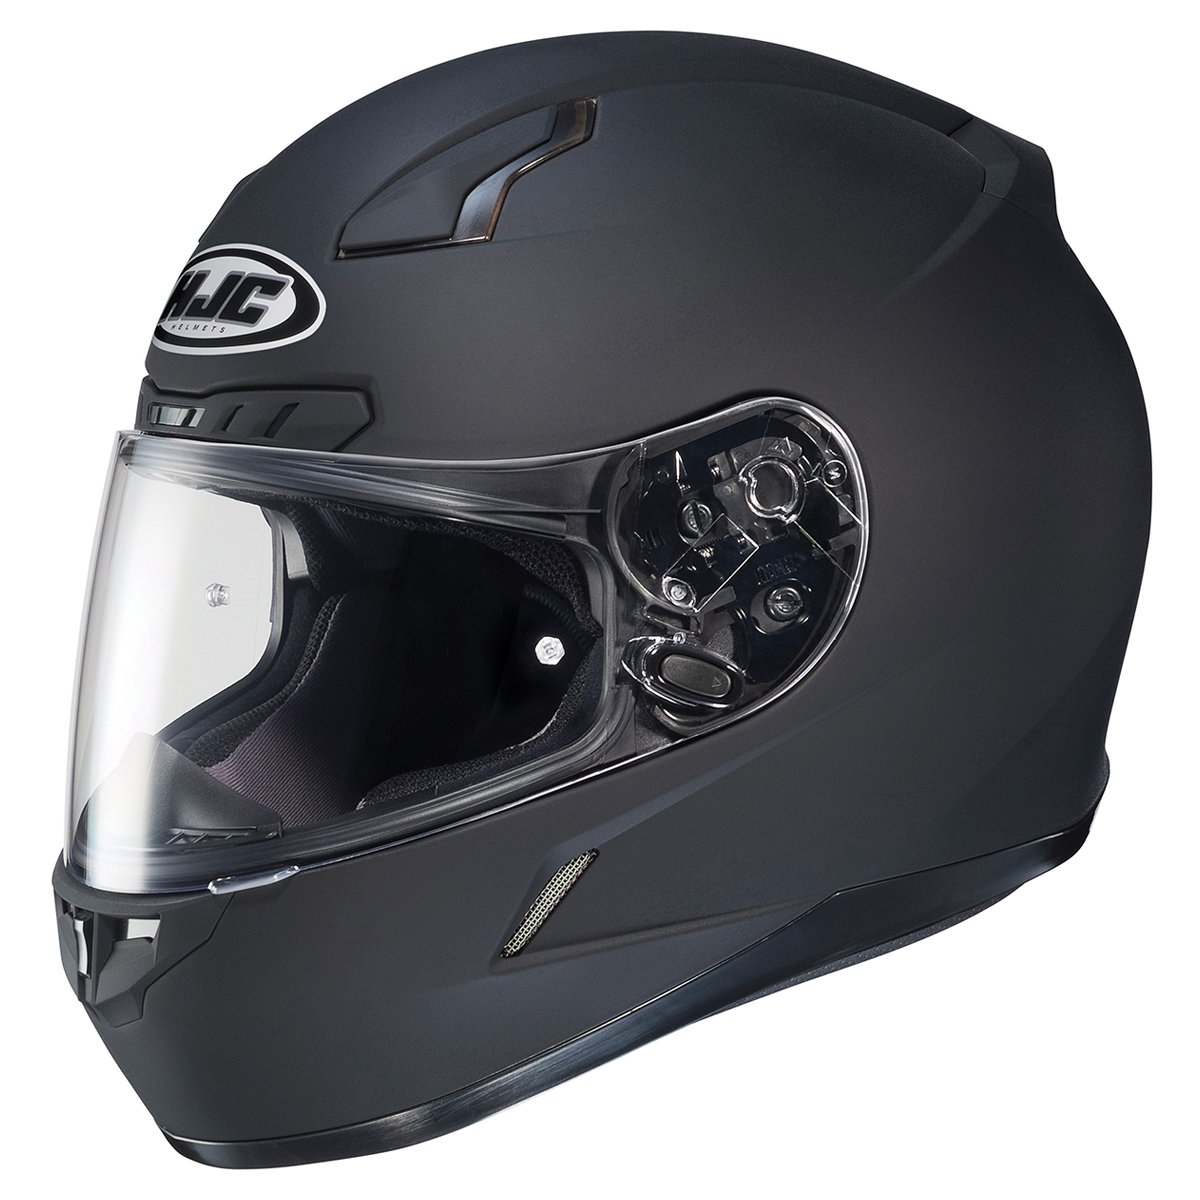 HJC 824-614 CL-17 Full-Face Motorcycle Helmet